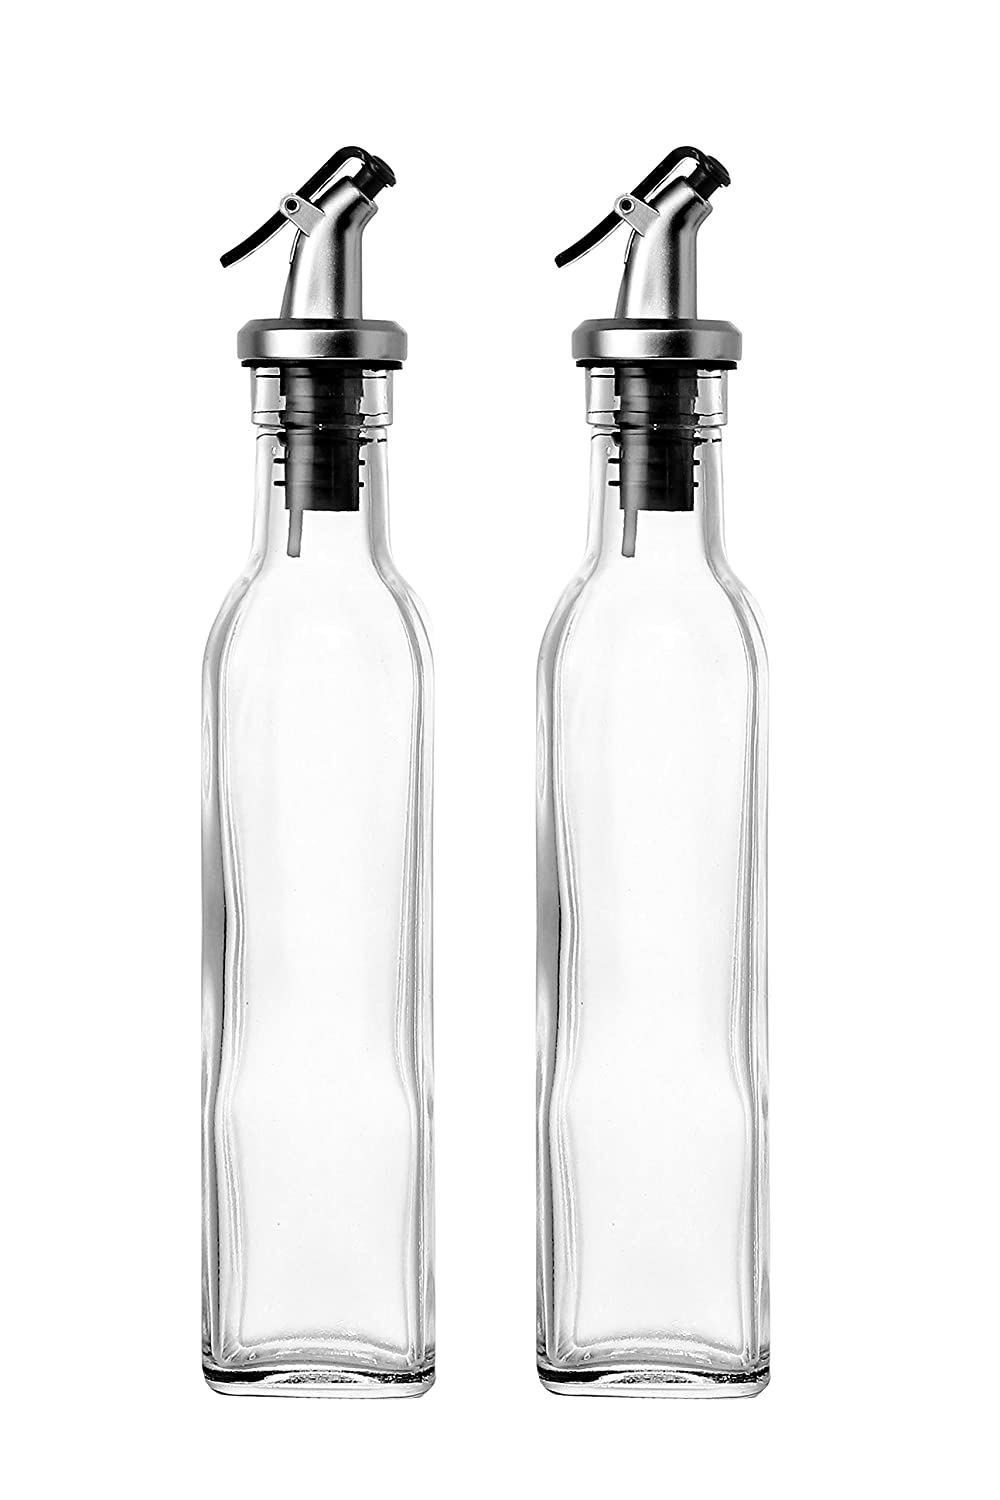 set of 2 oil and vinegar cruet glass bottles with dispensers 250ml by juvale ebay. Black Bedroom Furniture Sets. Home Design Ideas